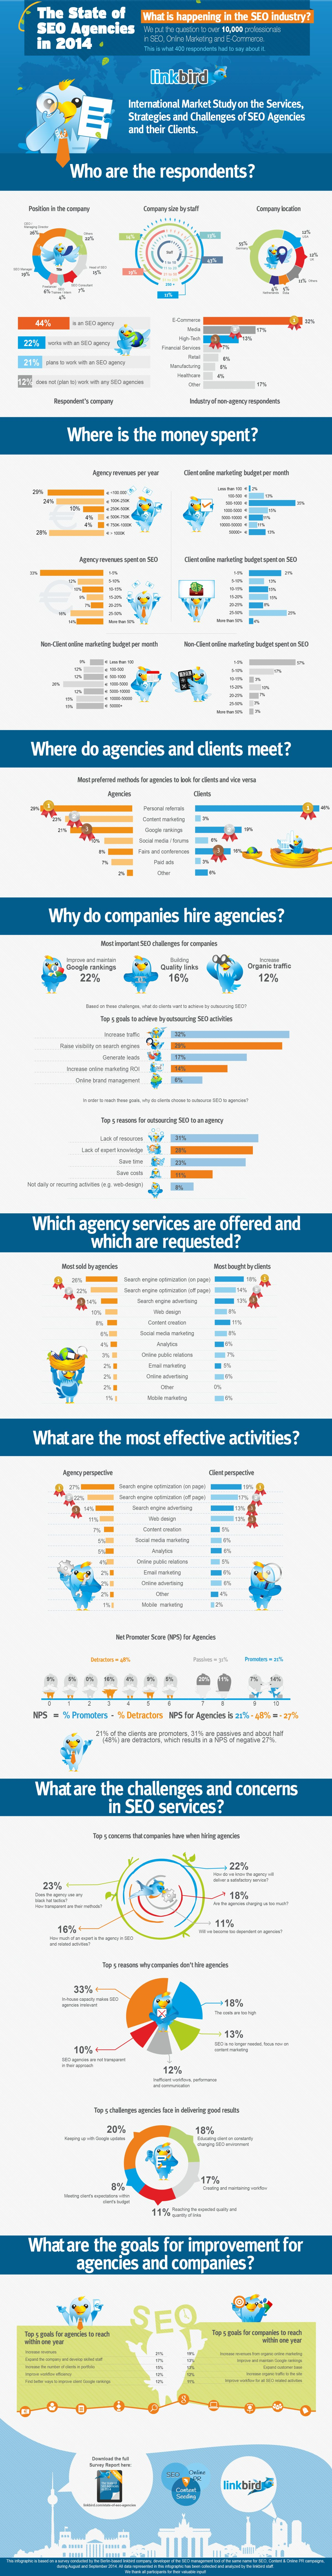 The State of SEO Agencies 2014